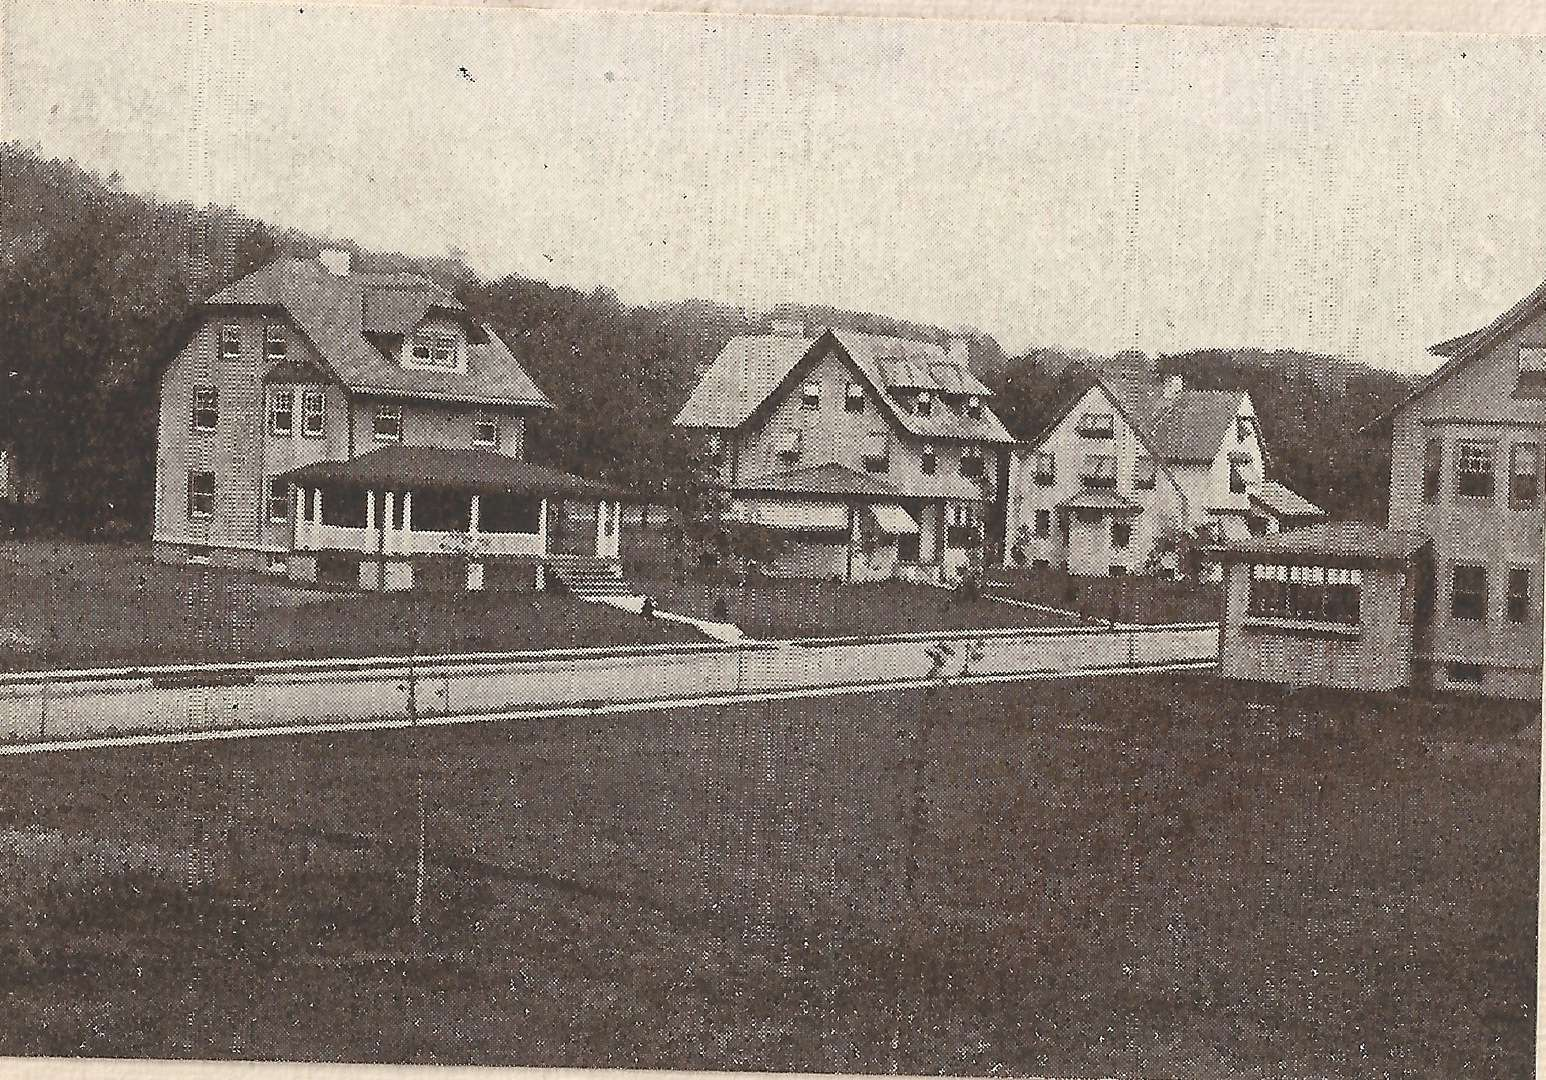 Houses at 114, 118, and 124 Edgemont Road, circa 1909